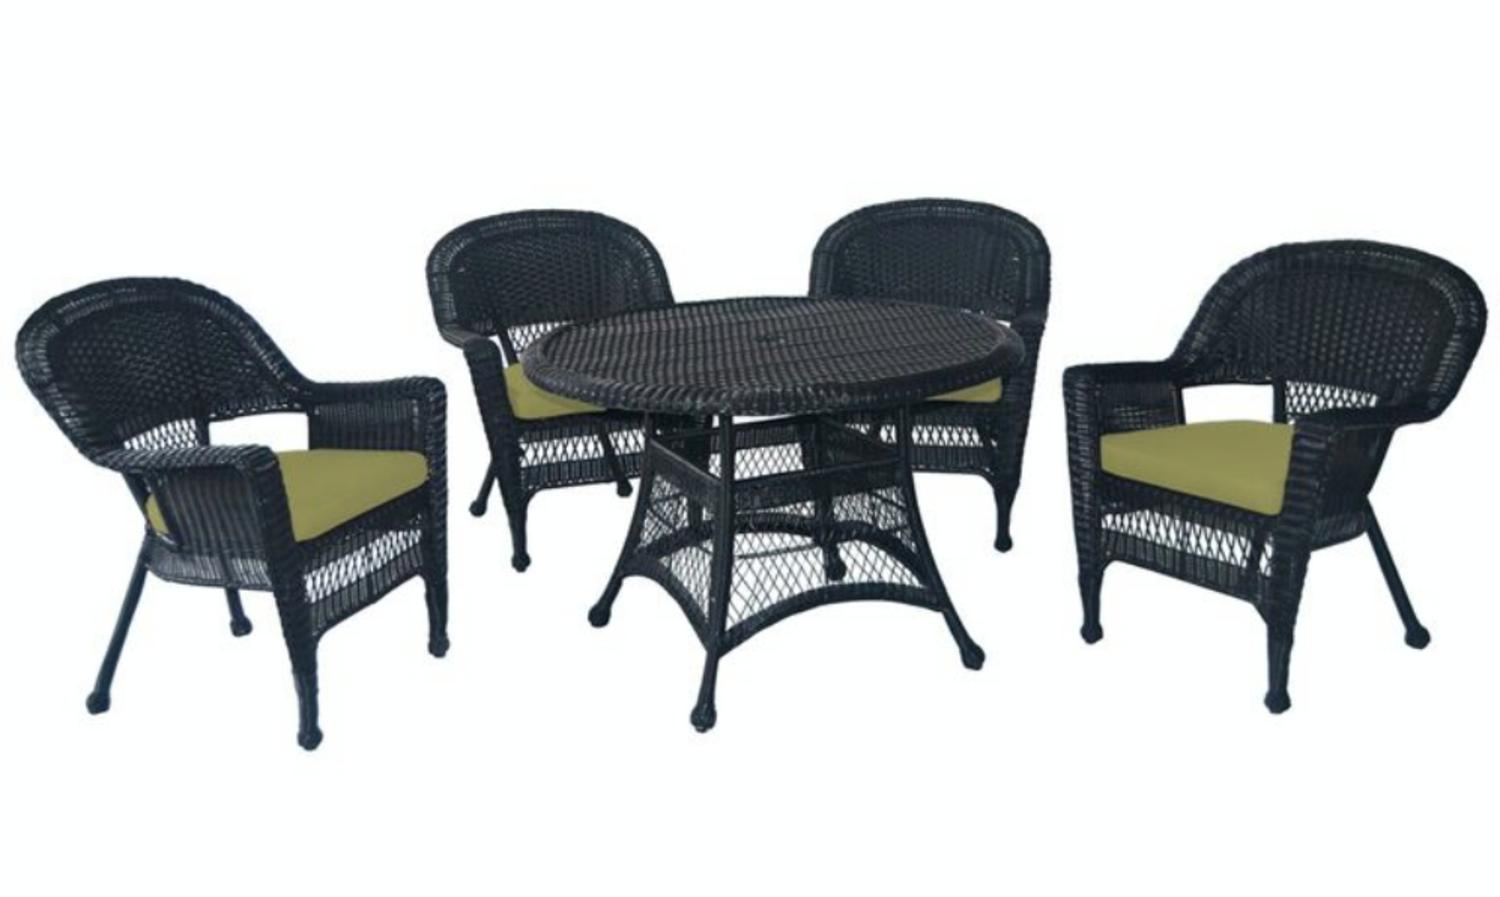 5-Piece Black Resin Wicker Chair & Table Patio Dining Furniture Set Green Cushions by CC Outdoor Living